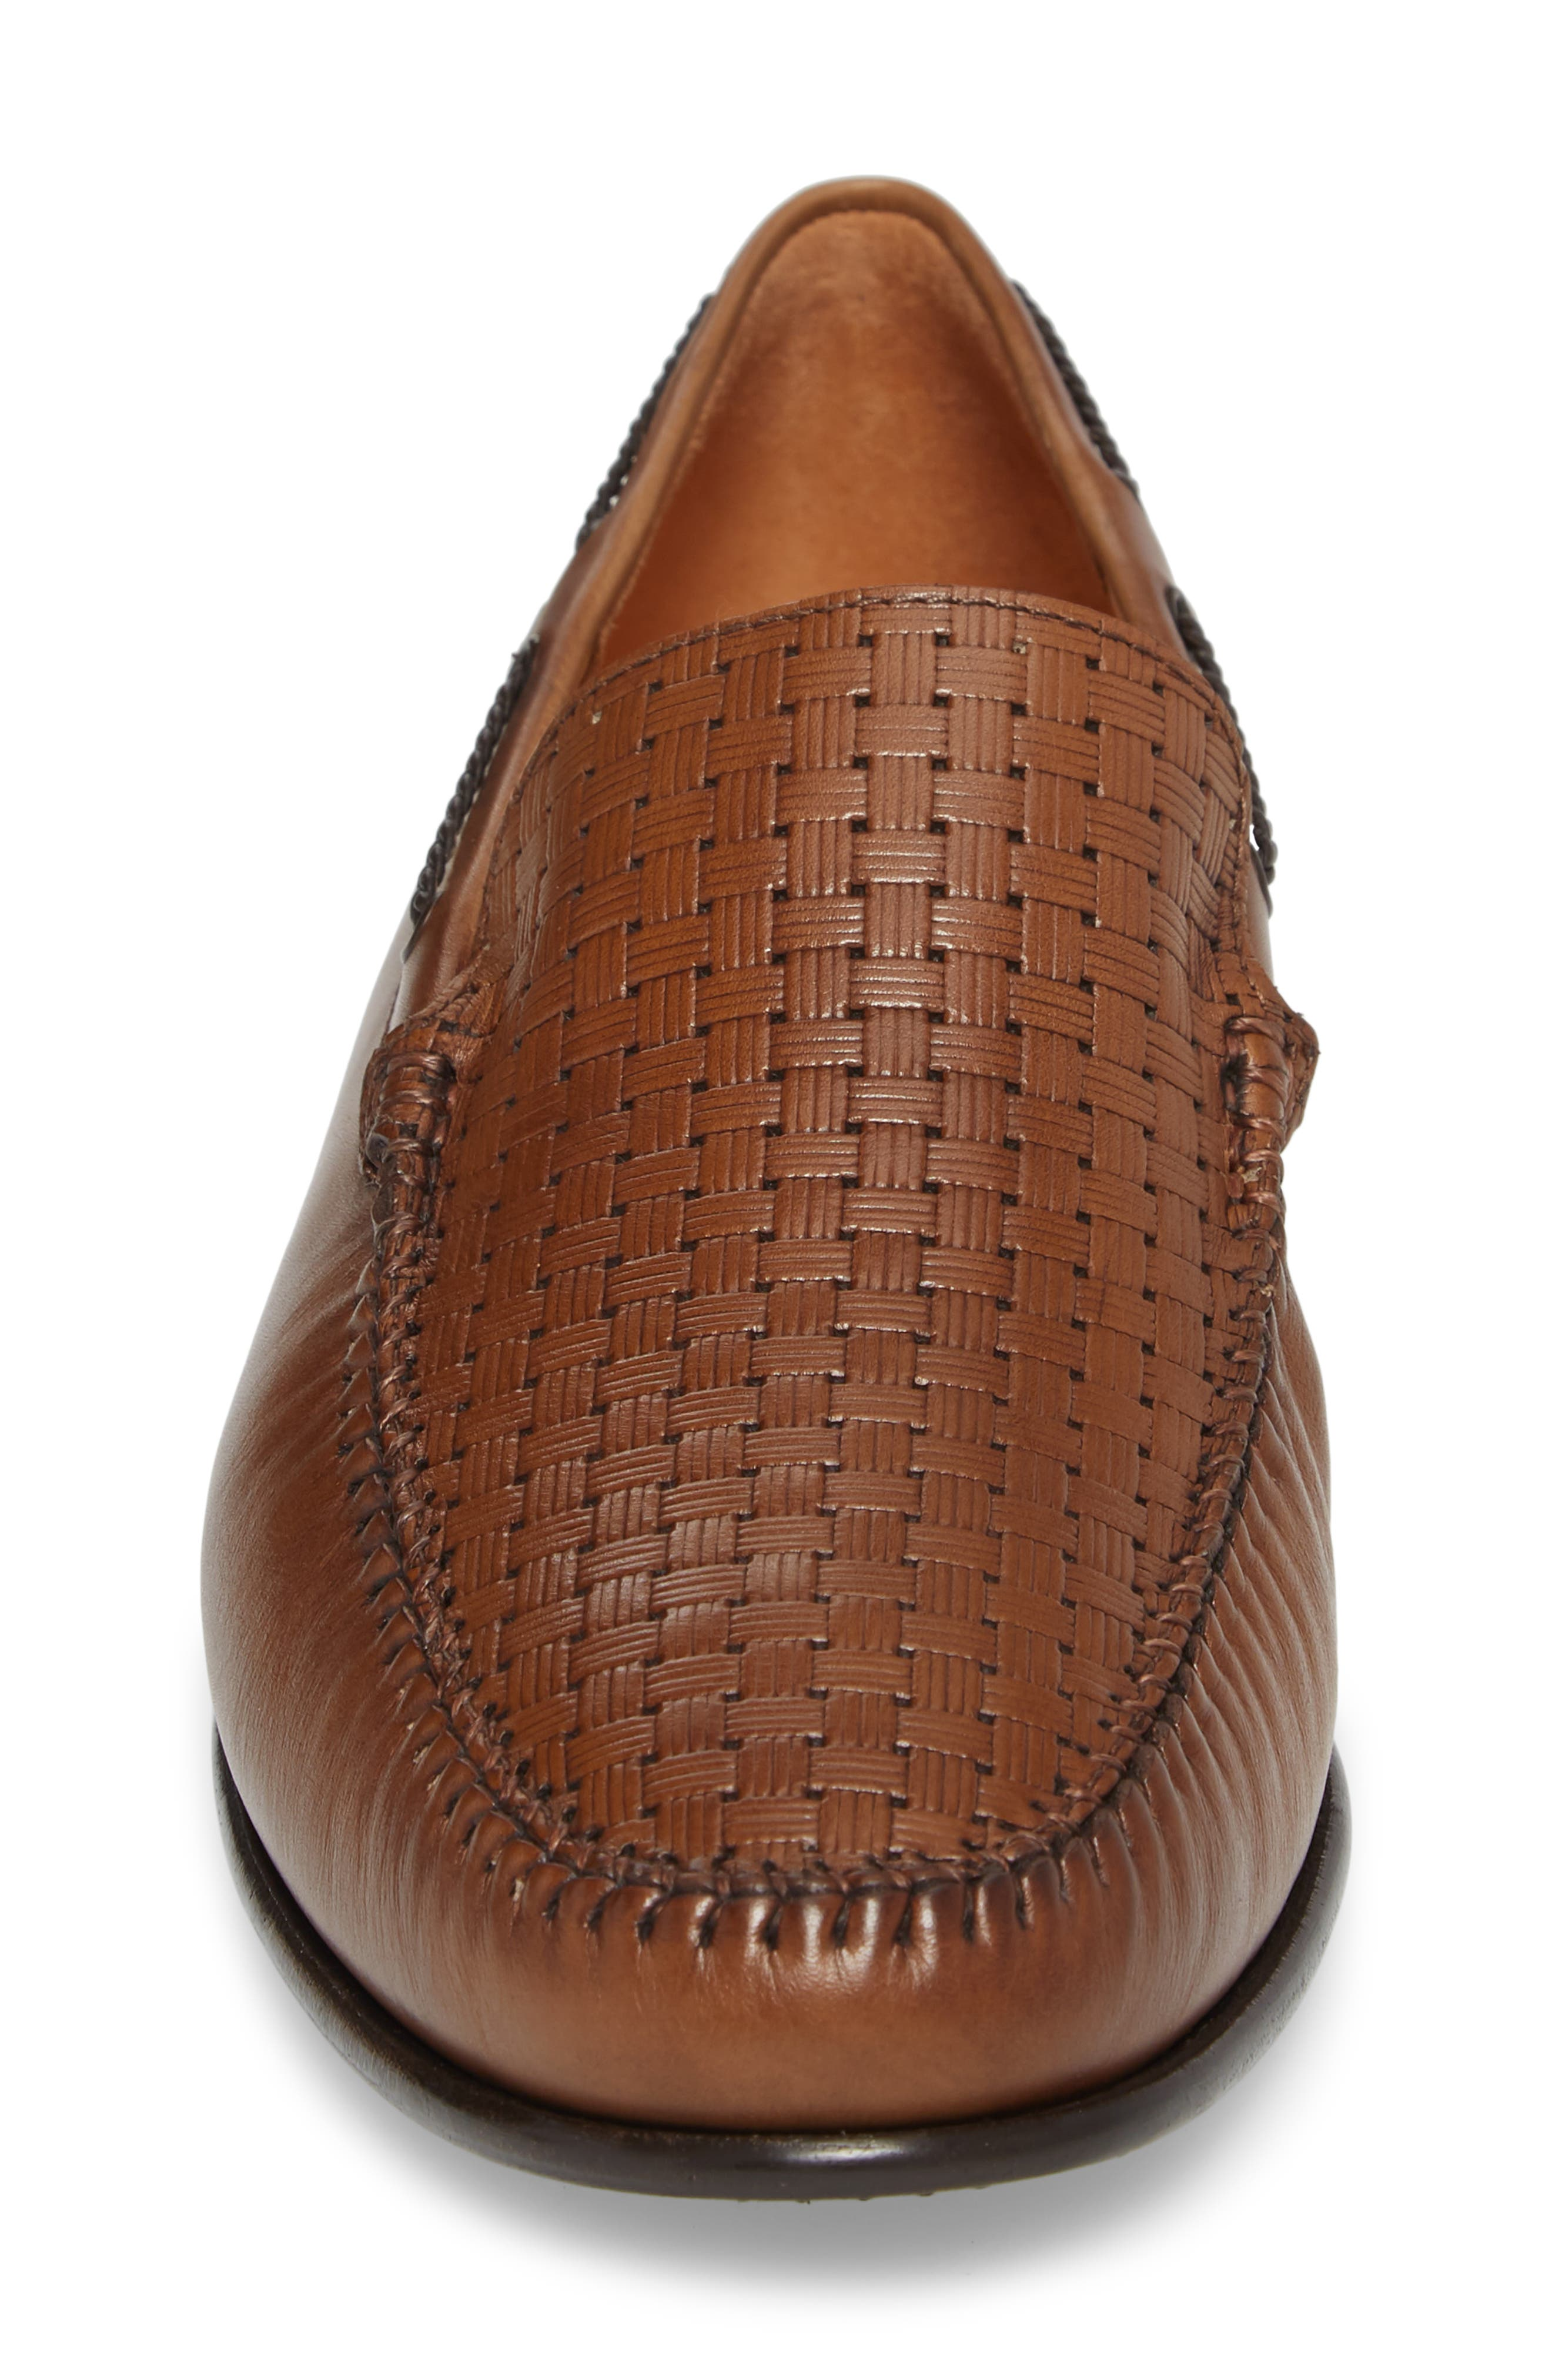 Jano Embossed Moc-Toe Loafer,                             Alternate thumbnail 4, color,                             Cognac Leather